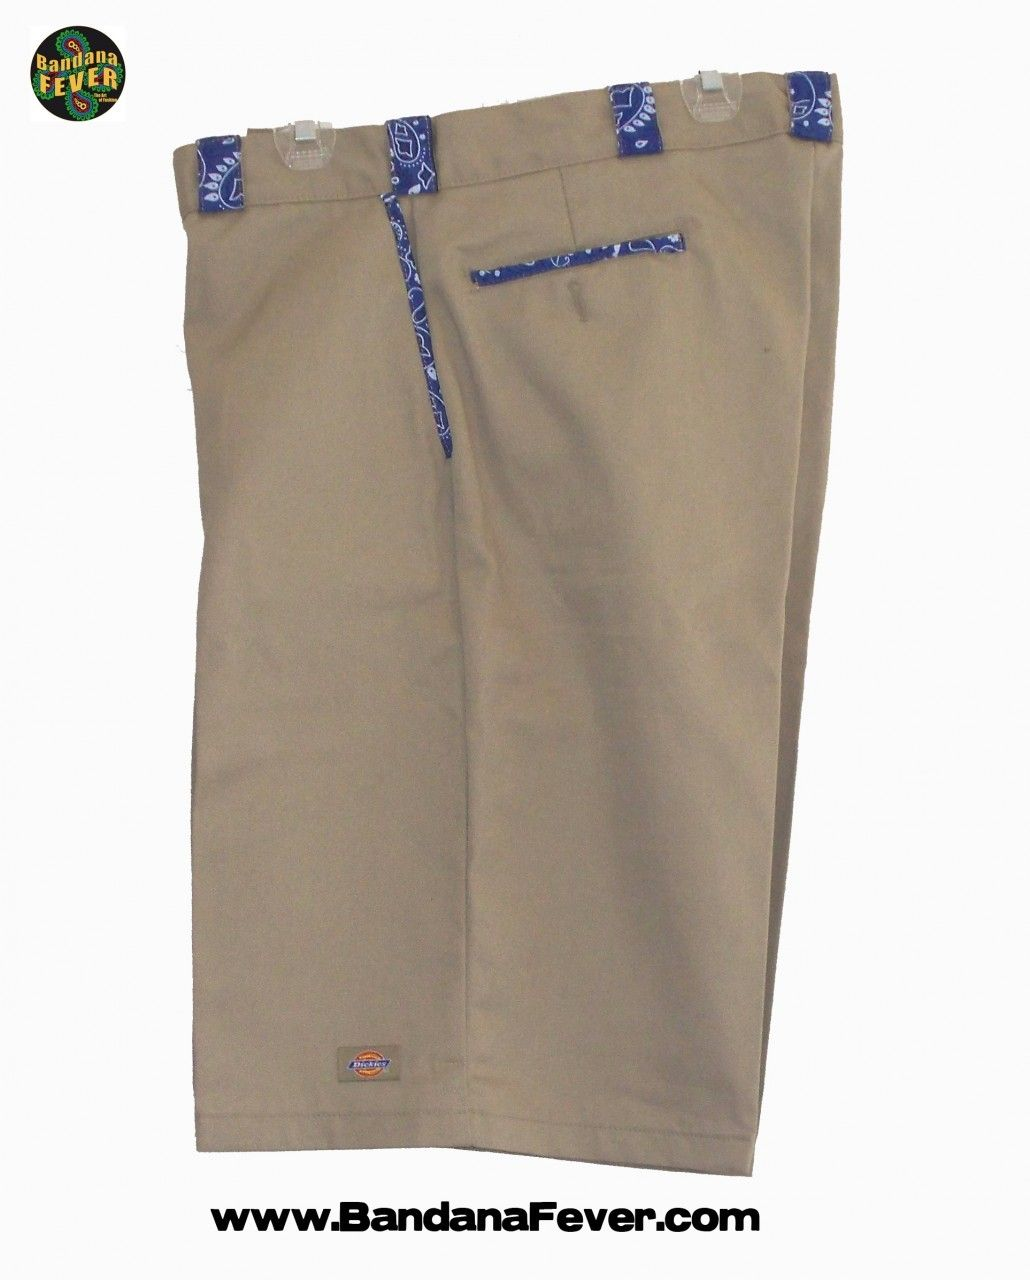 Bandana Fever - - Bandana Fever Custom Bandana Dickies Shorts Khaki/Royal  Blue Bandana,